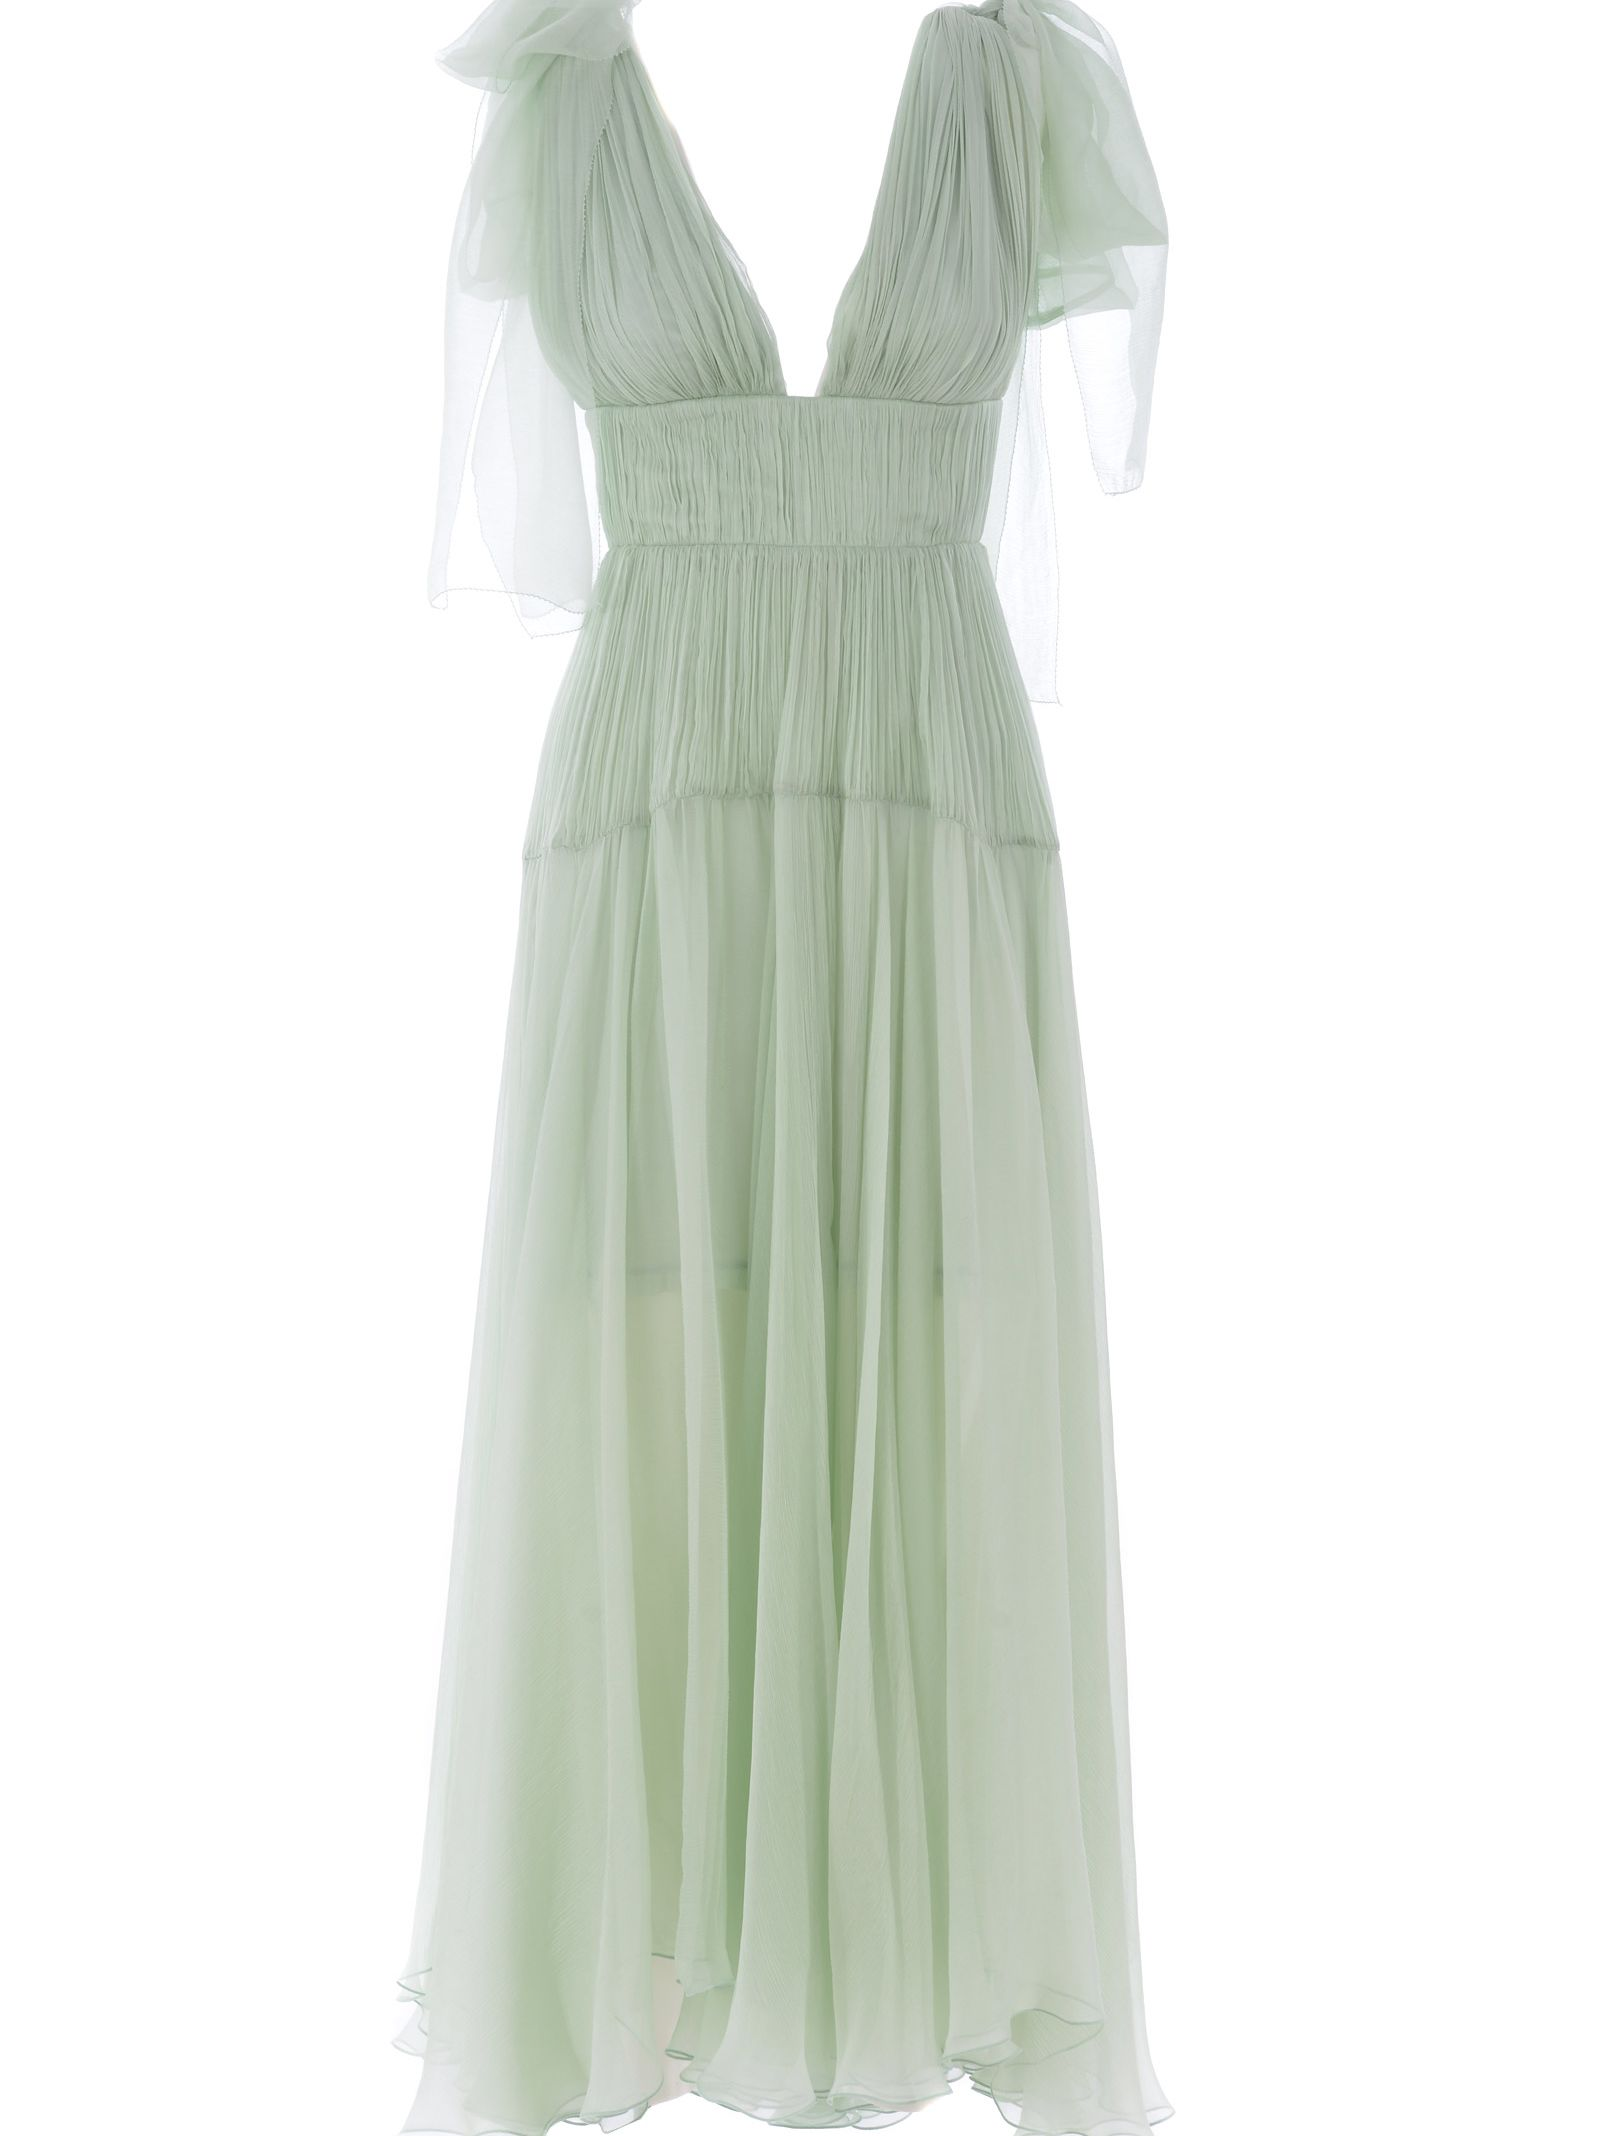 Maria Lucia Hohan Rowen Dress